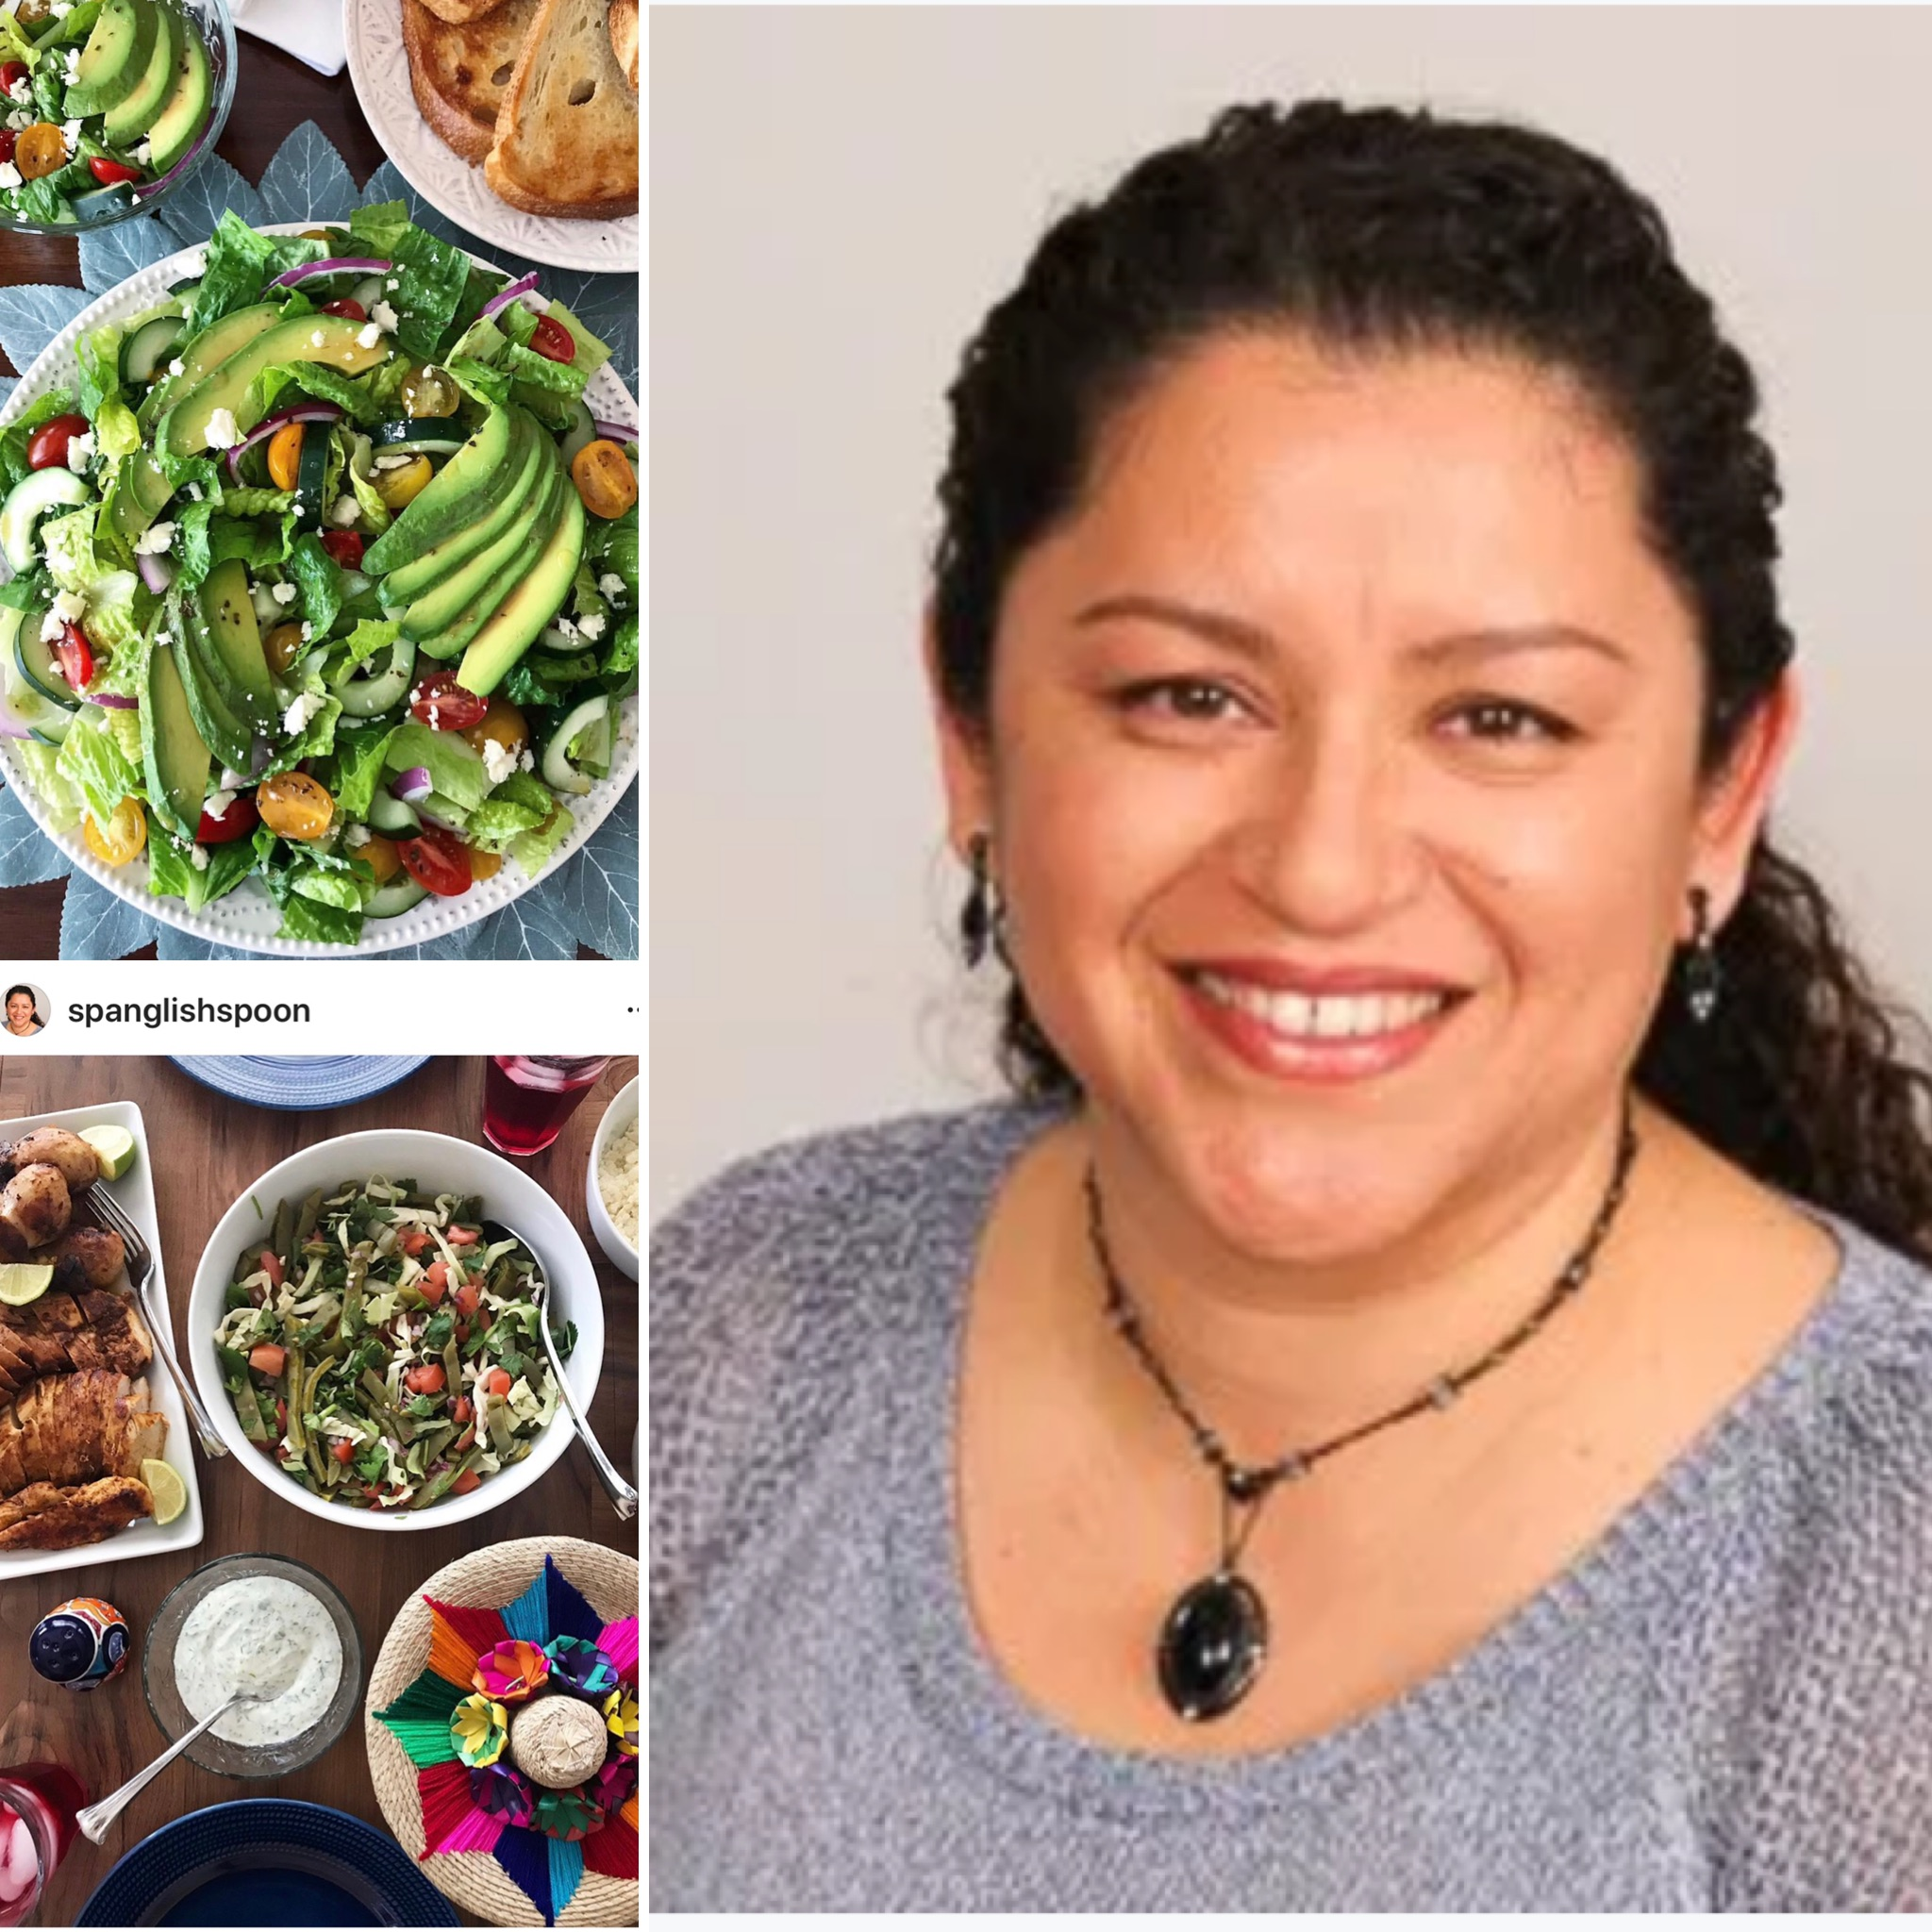 Visit  Spanglish Spoon's website  and  instagram  for her delicious, healthy recipes!